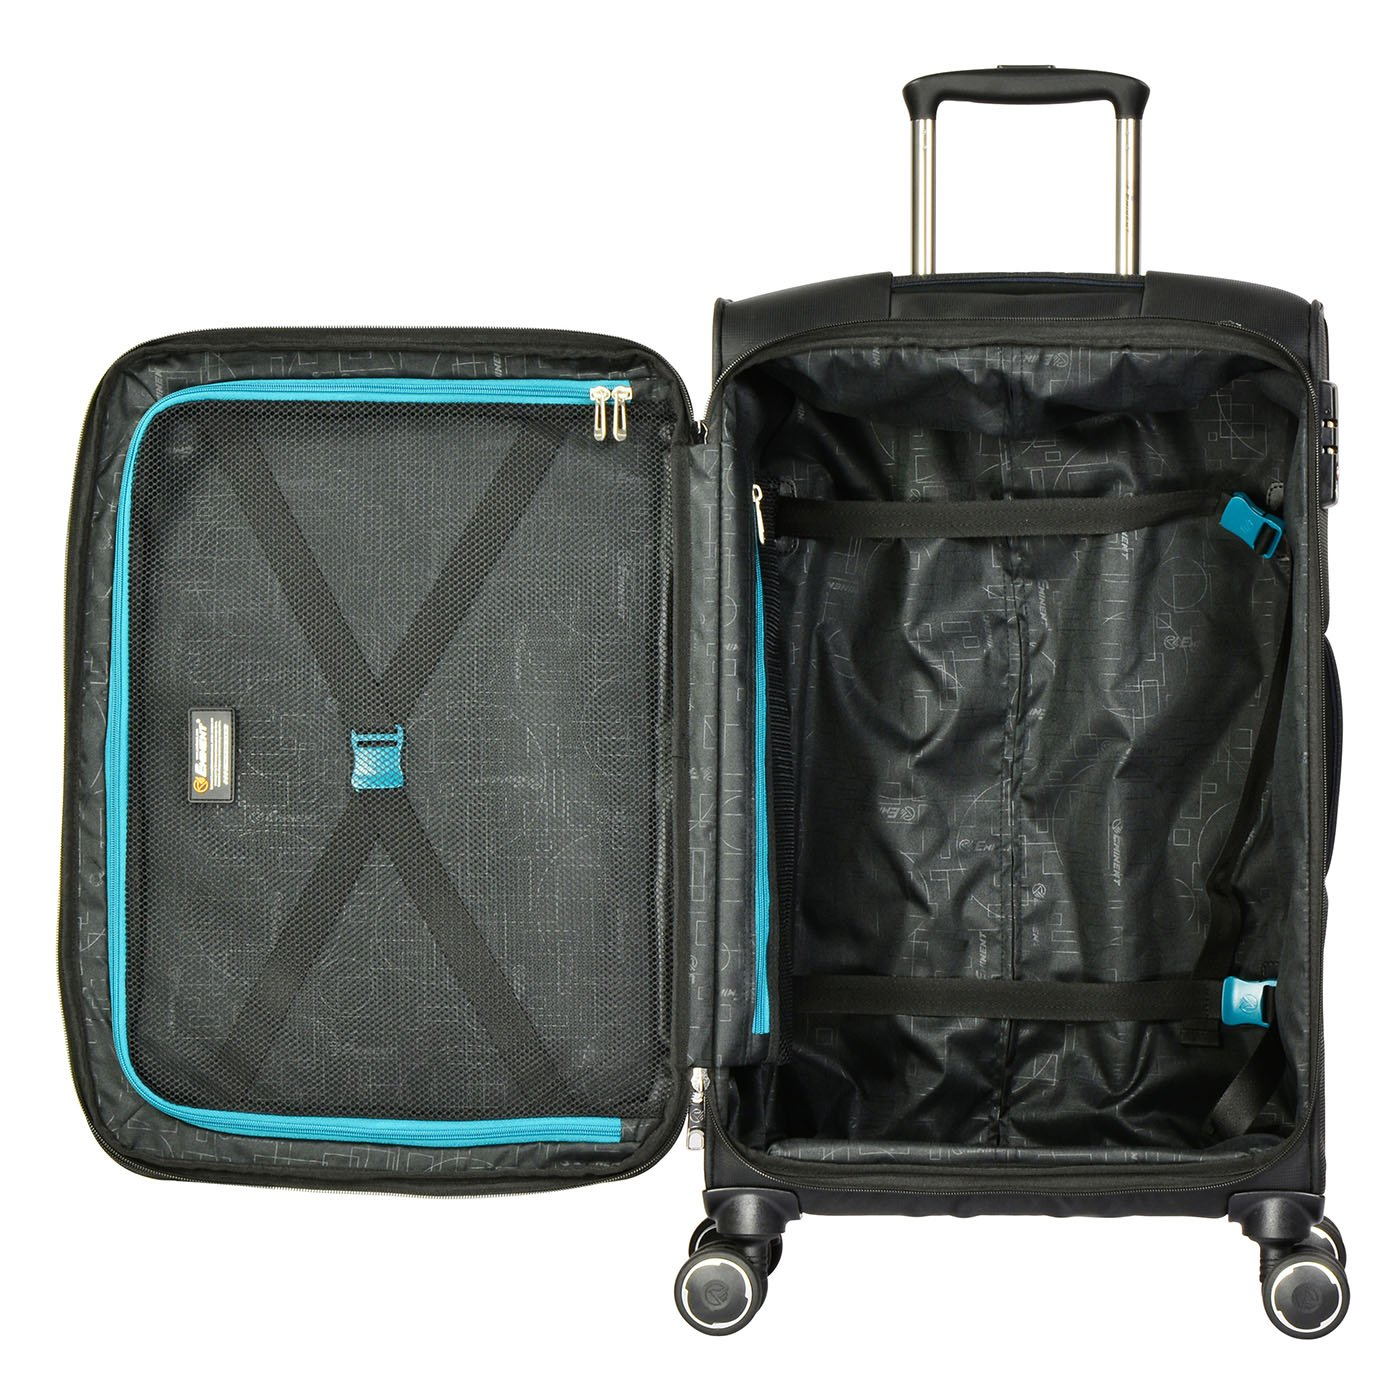 859ee3a8c Eminent Valencia Luggage Set of 3 | 54/67/78cm Carry-on Hand Bag, Medium &  Large Travel Check-in Suitcases | 4 Silent 360° Double wheels, TSA Lock, ...